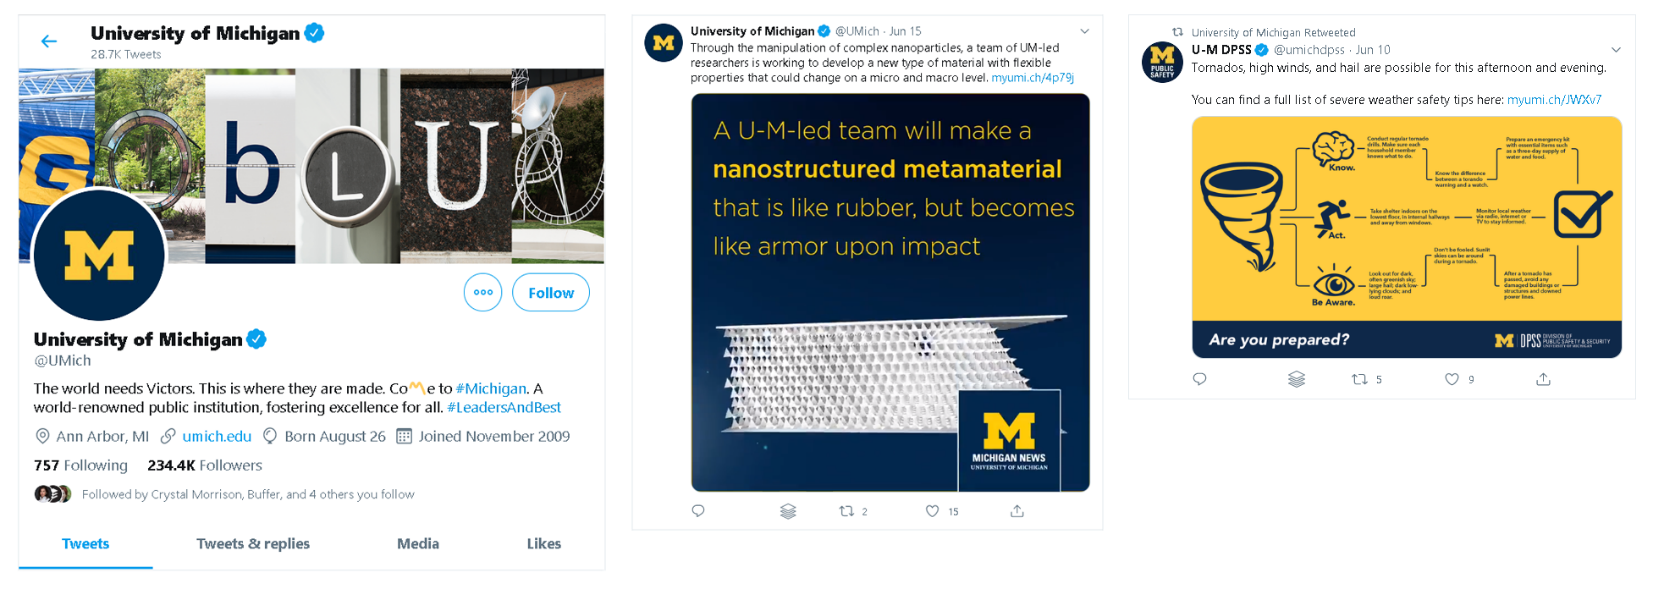 example of effective social media marketing for a university